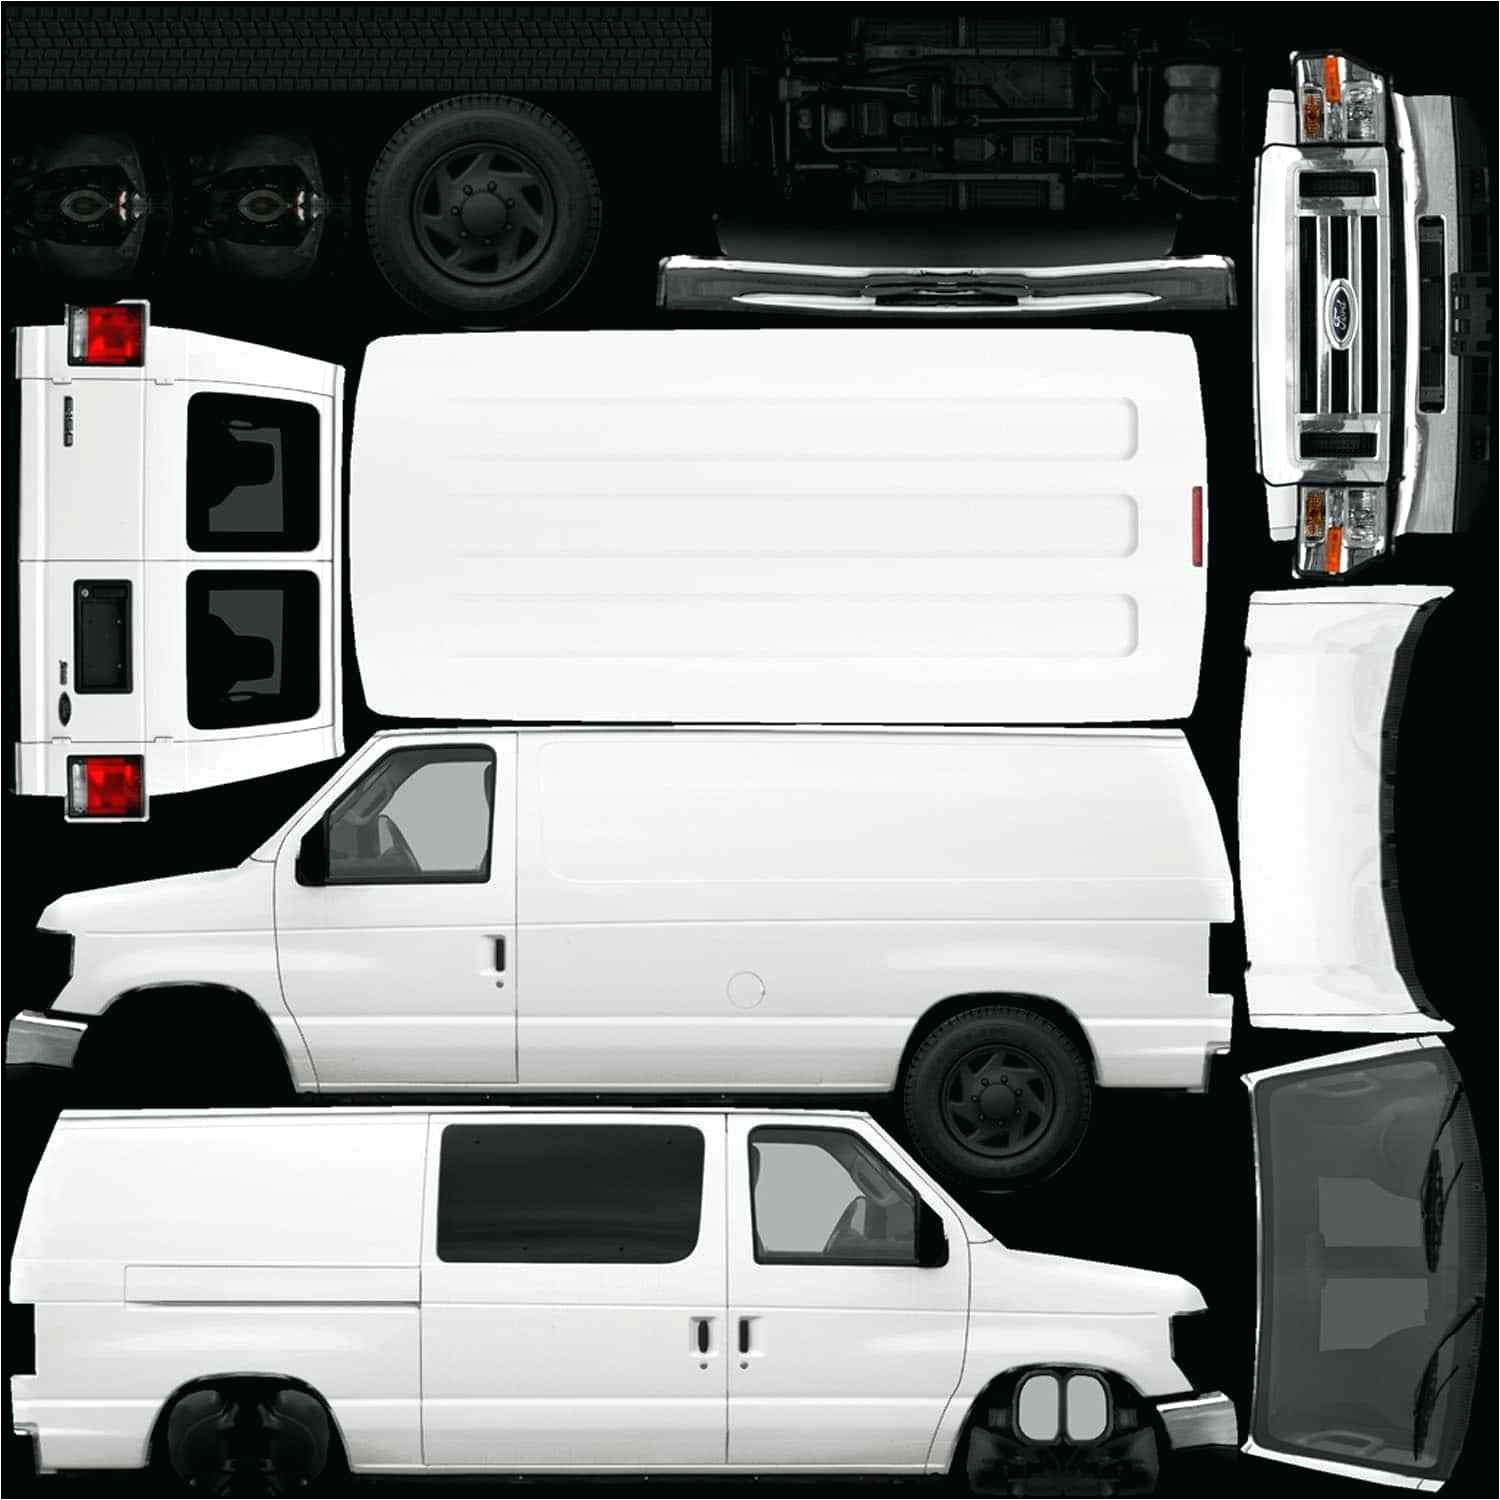 vehicle lettering template